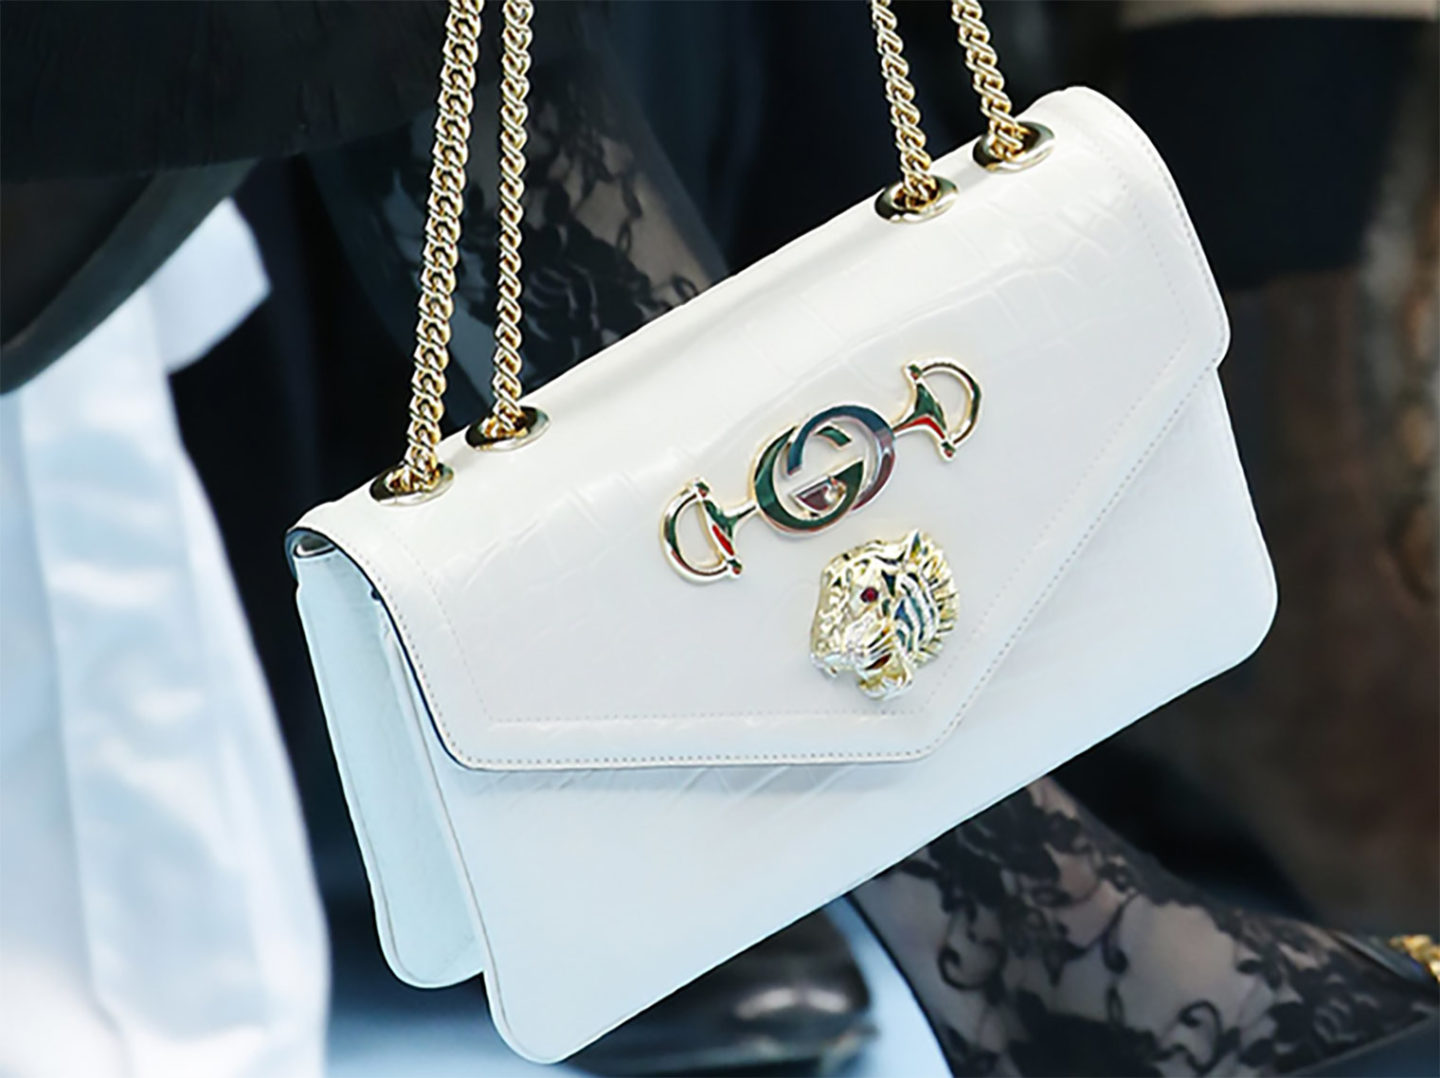 122ea6670c12 Introducing the new Gucci Rajah bag | Chic Journal blog